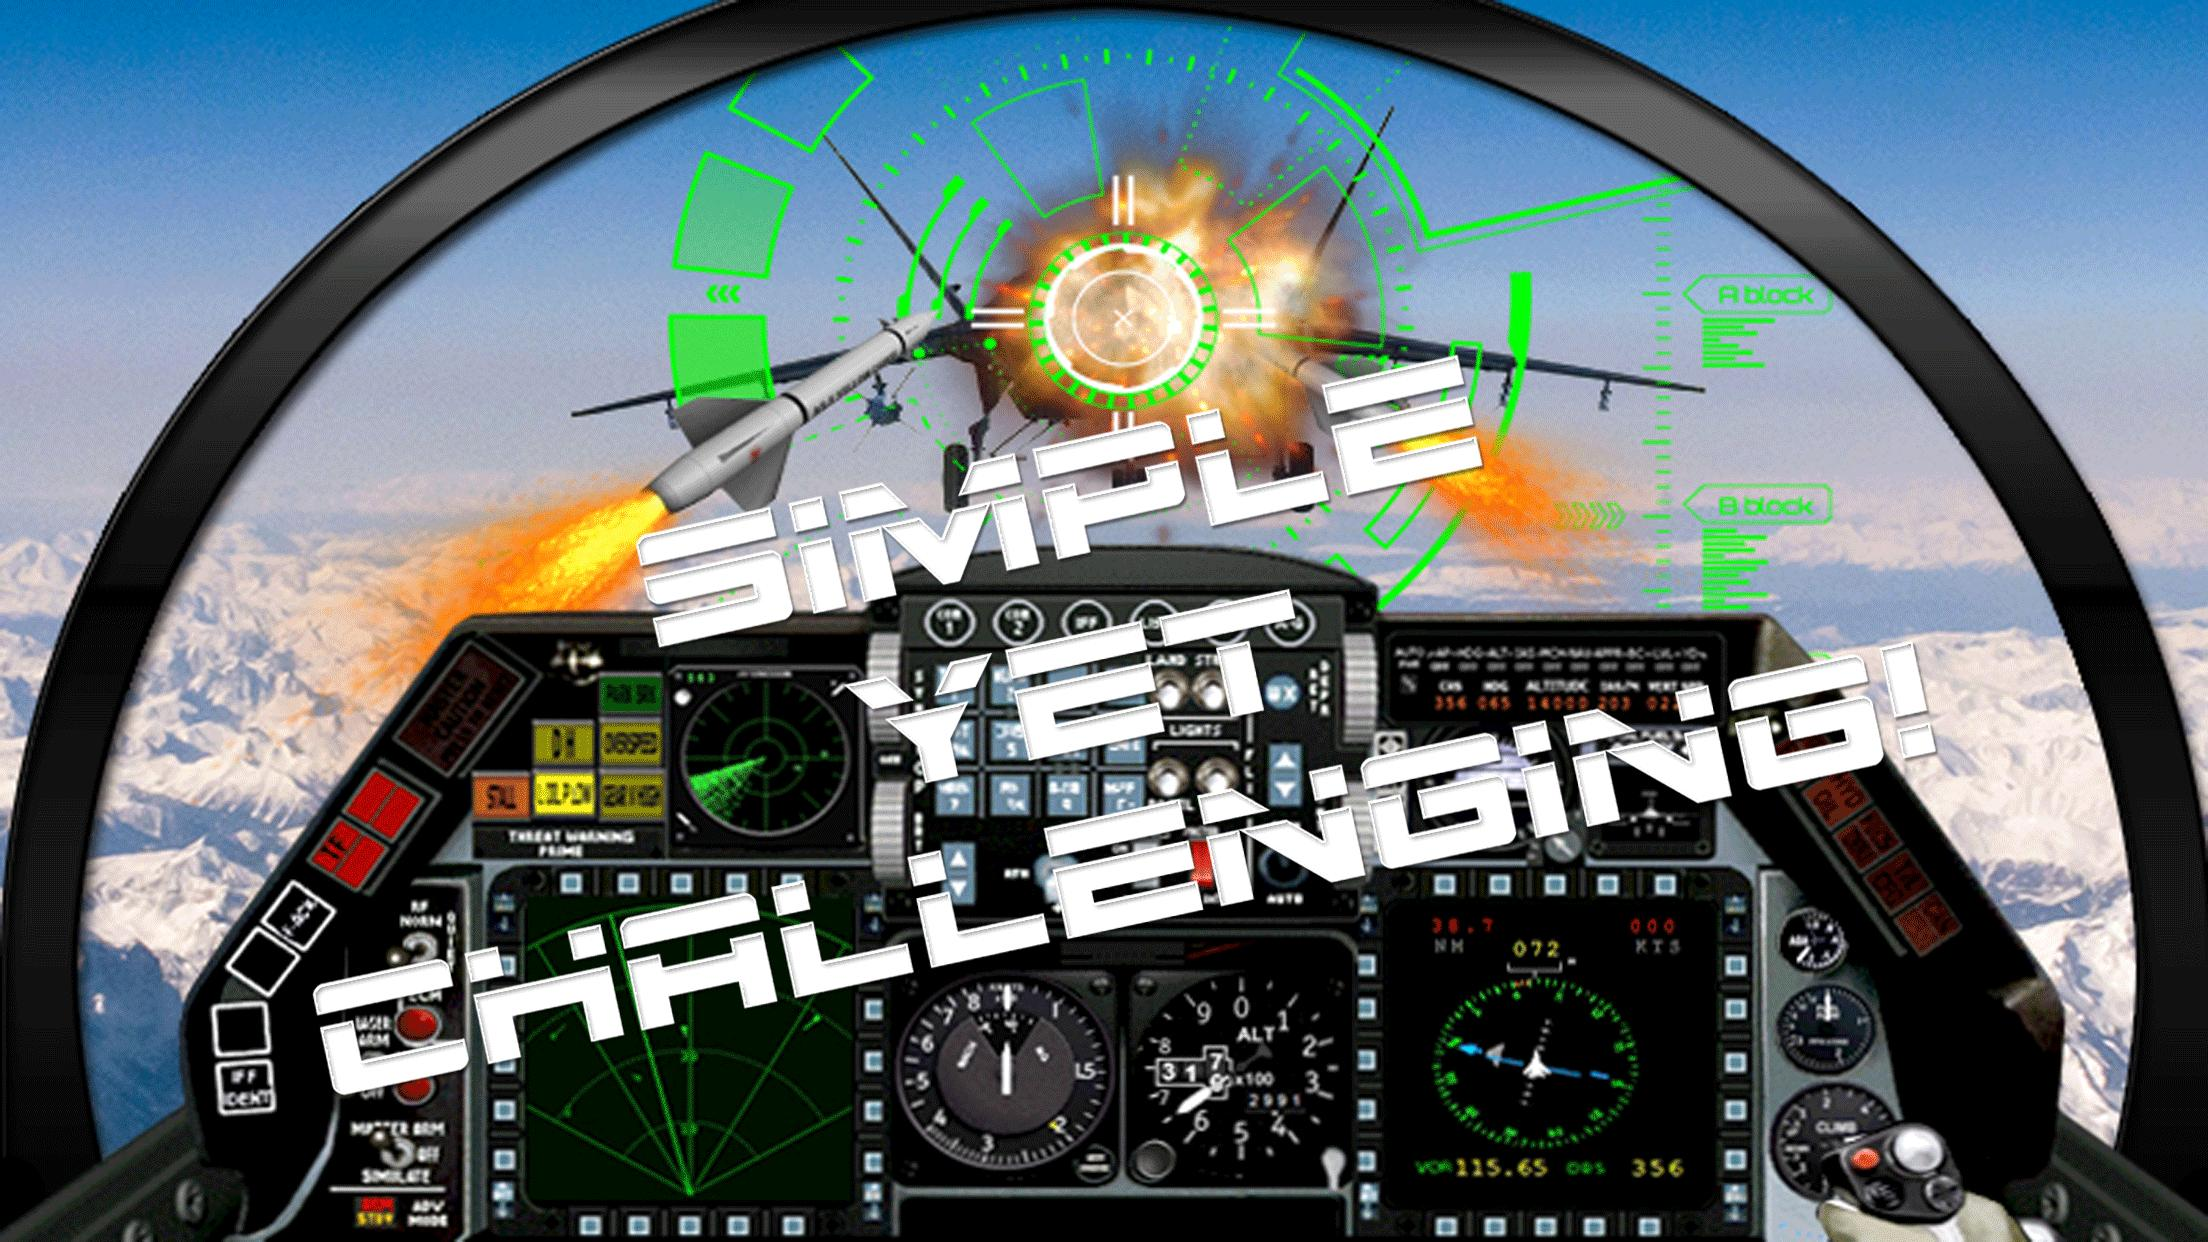 Fighter Jet Simulation for Android - APK Download